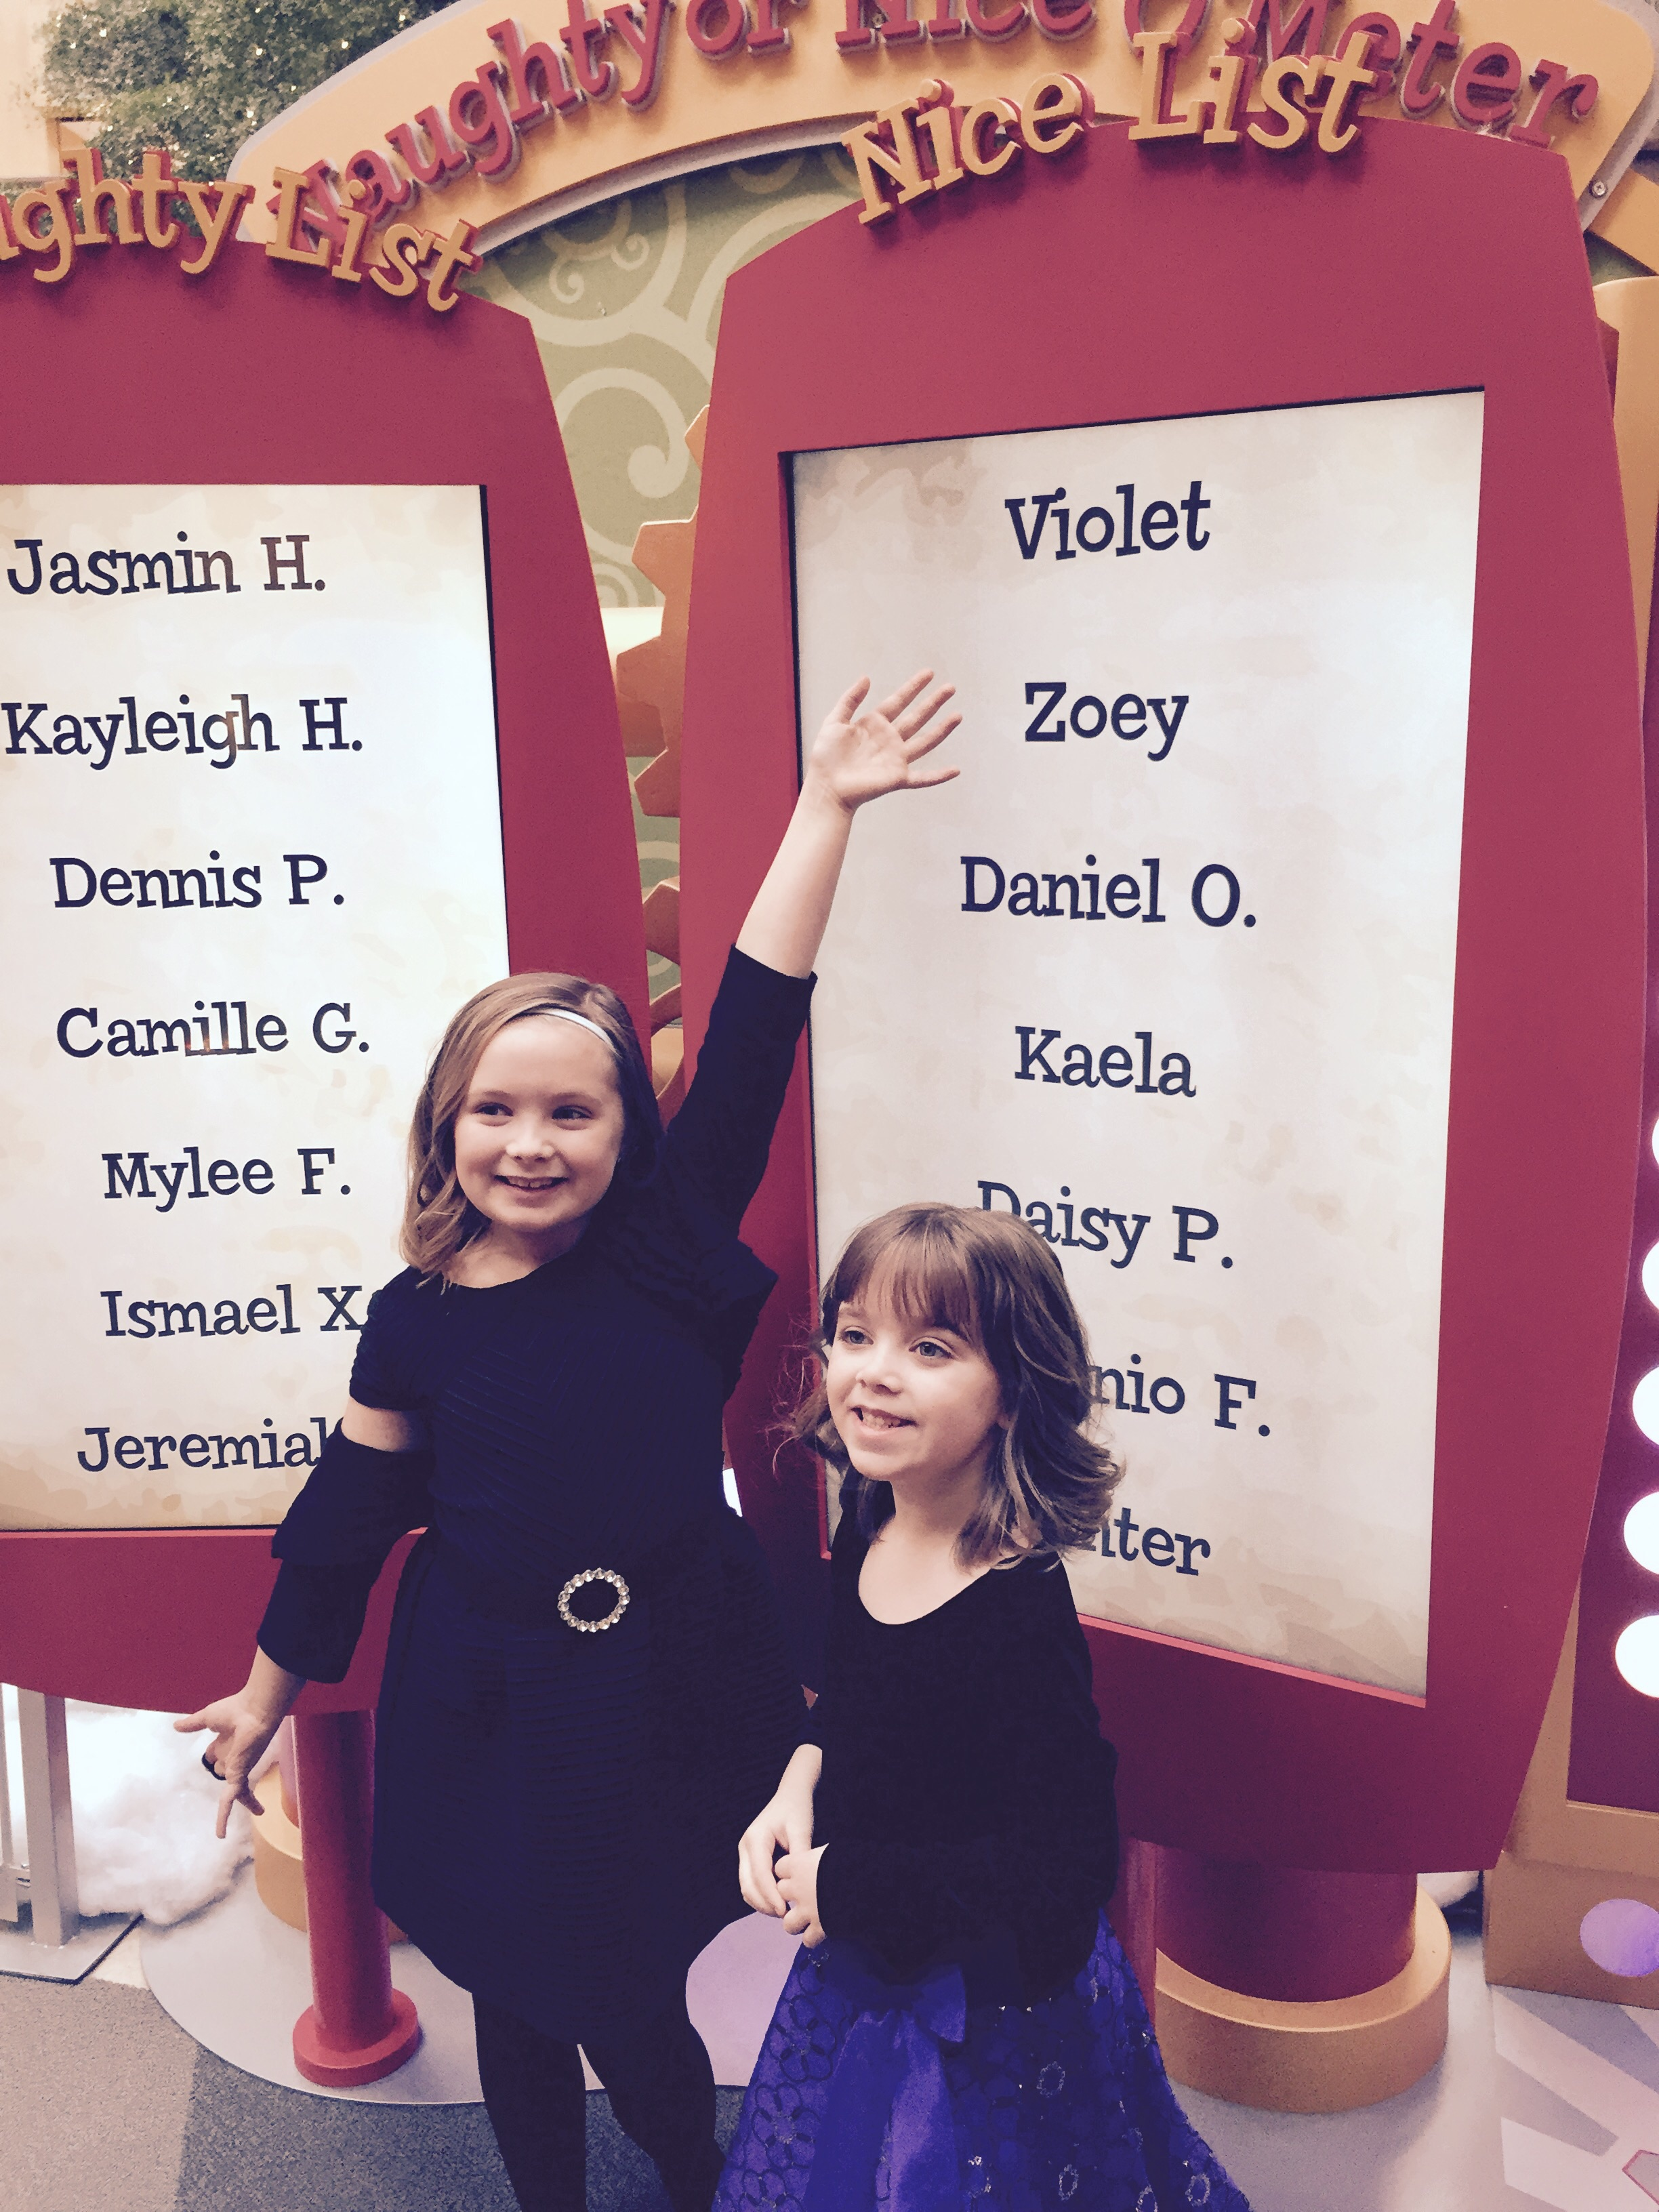 Last year's pic. Violet this year decided to bail, but still went with Zoey this year 👍